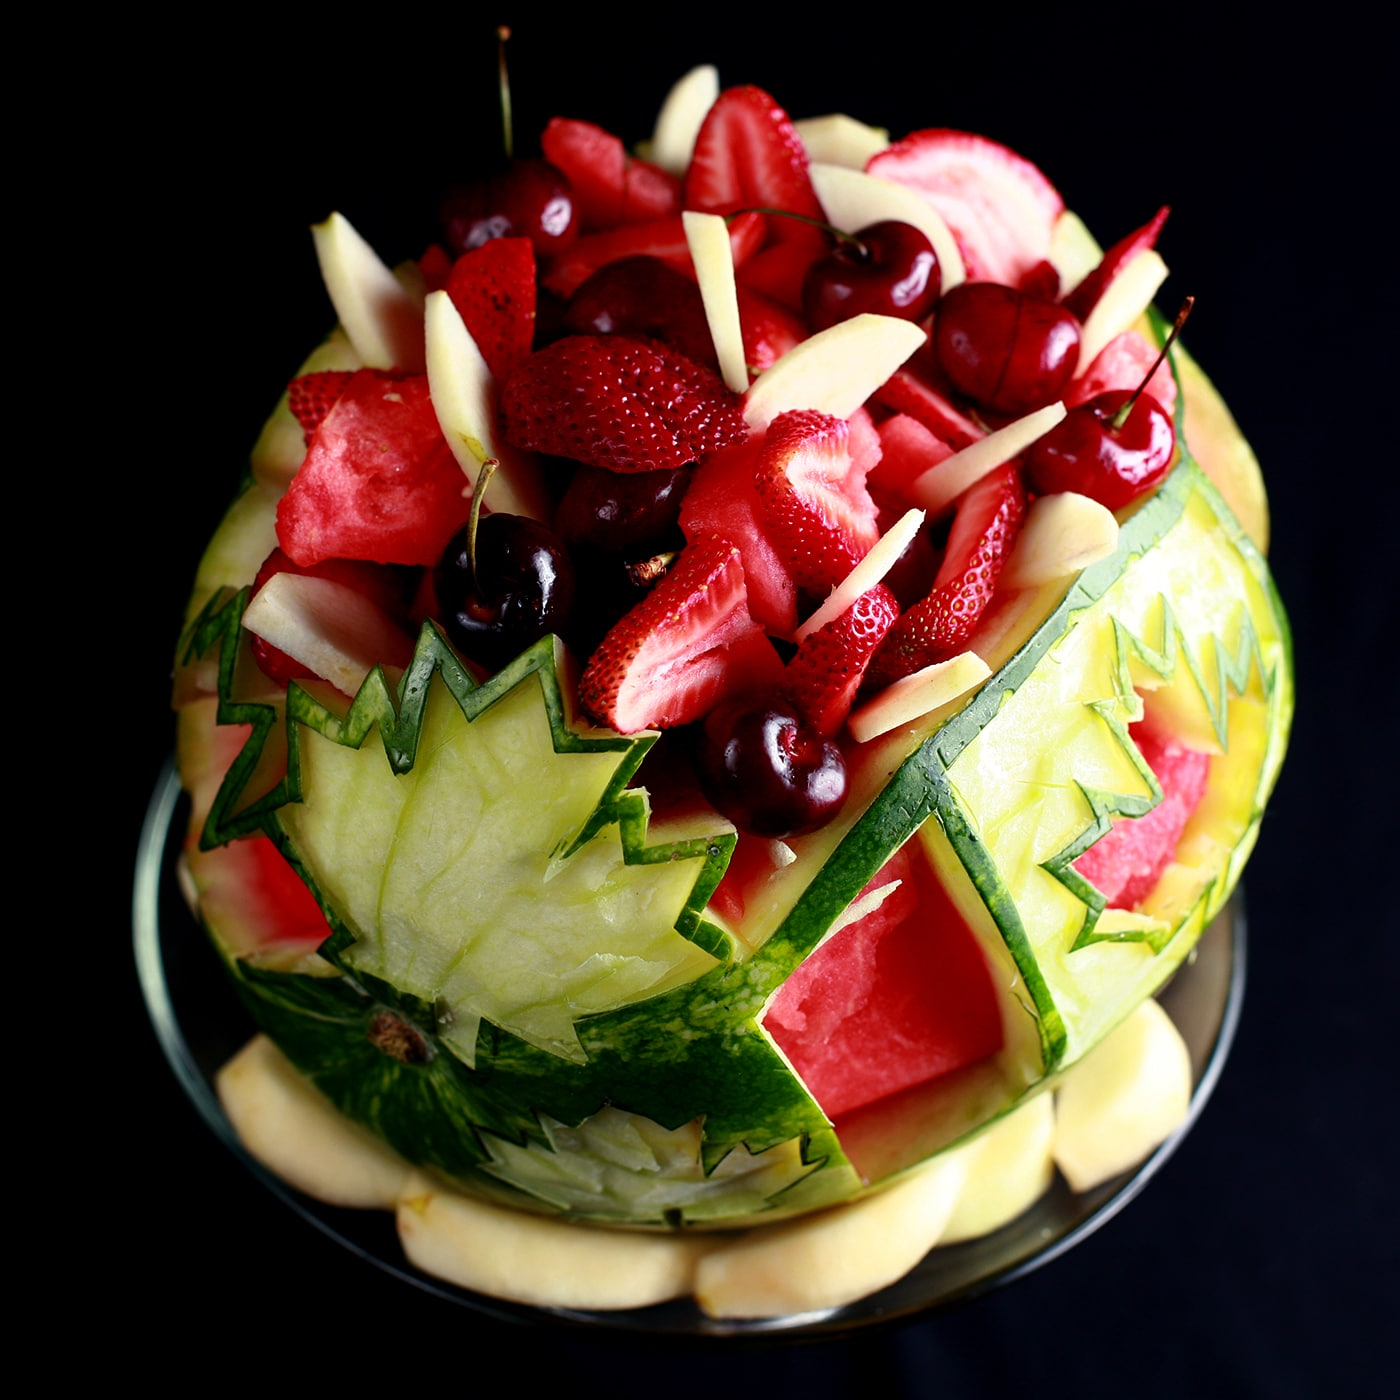 A Canada Day, Canadian Themed Watermelon Bowl. White and red maple leaves and a Canadian flag are carved into the watermelon, which is filled with red and white fruit.